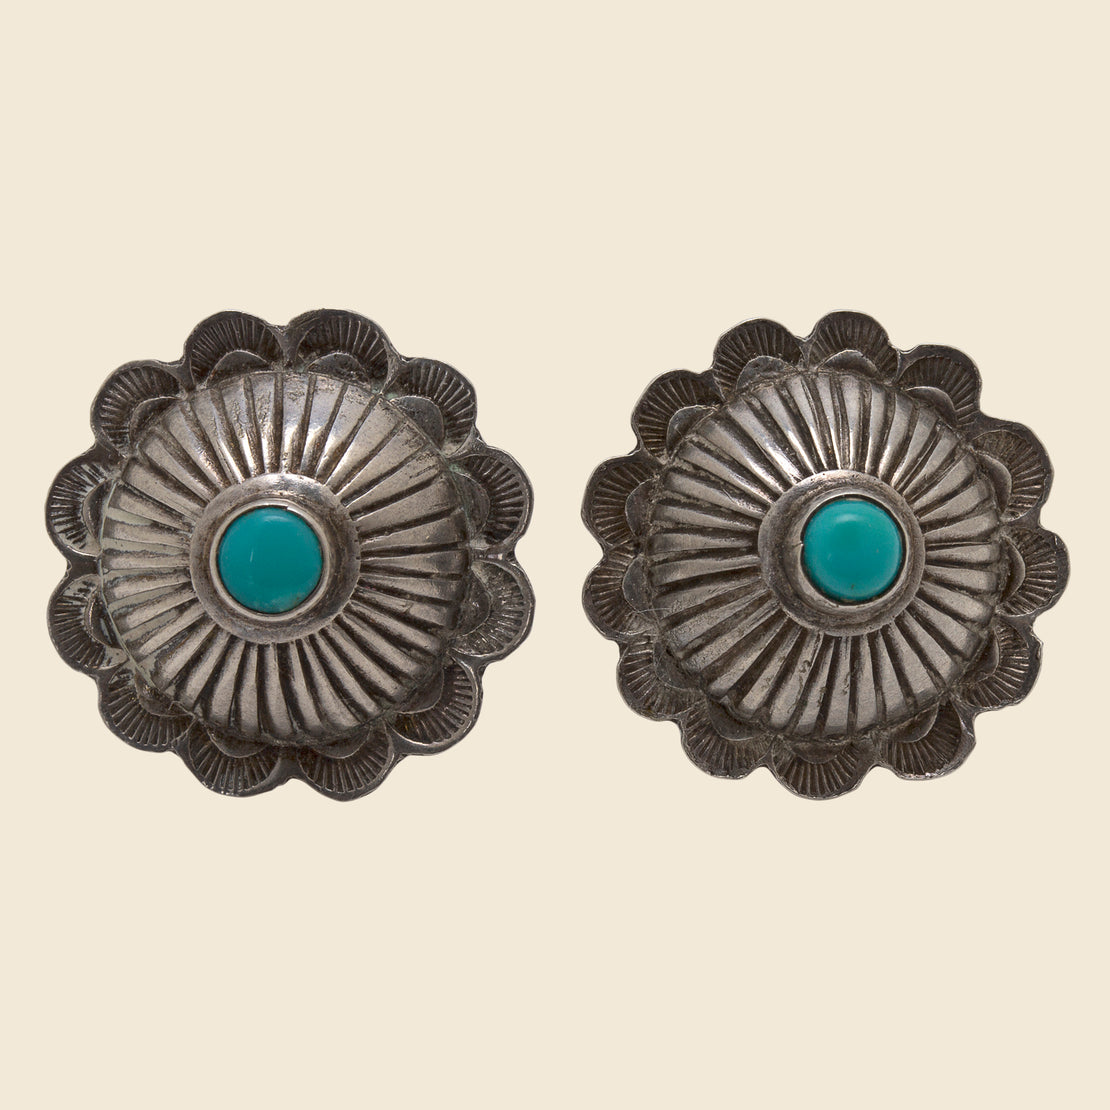 Vintage Concho Earrings - Silver & Turquoise